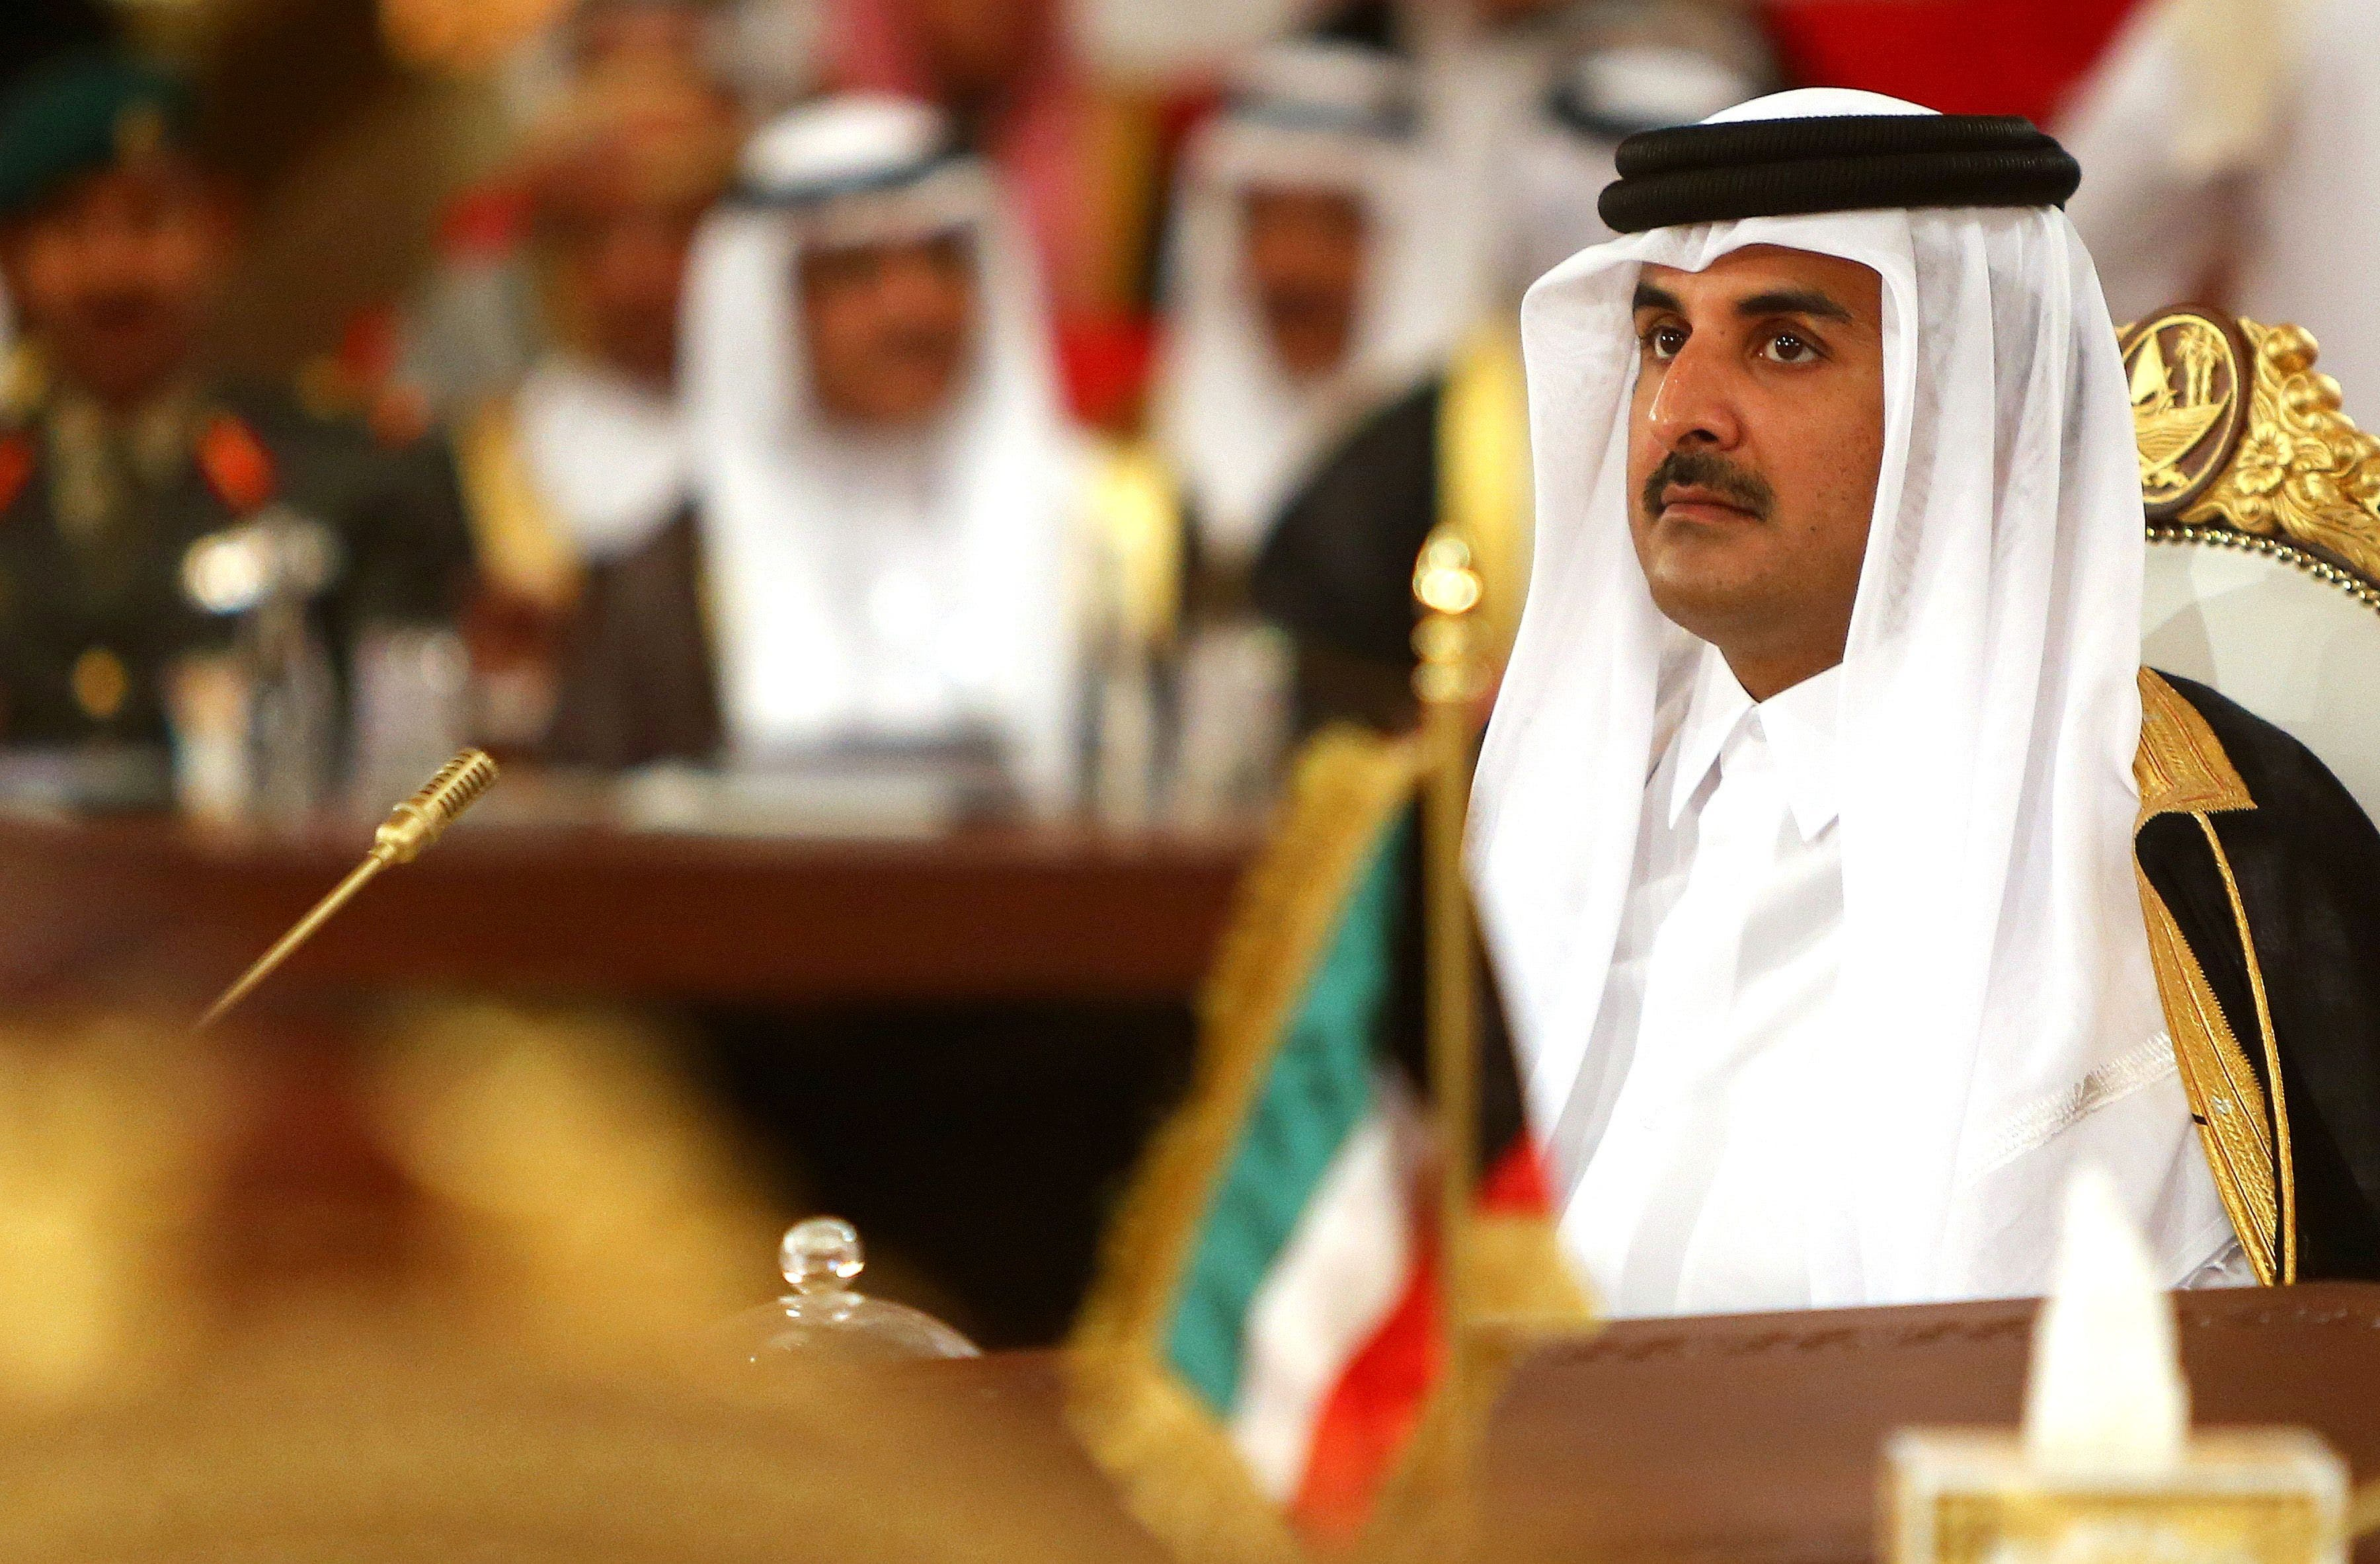 Qatar's Emir Sheikh Tamim bin Hamad Al-Thani looks on during the Gulf Cooperation Council (GCC) summit in Doha on December 9, 2014. (AFP)